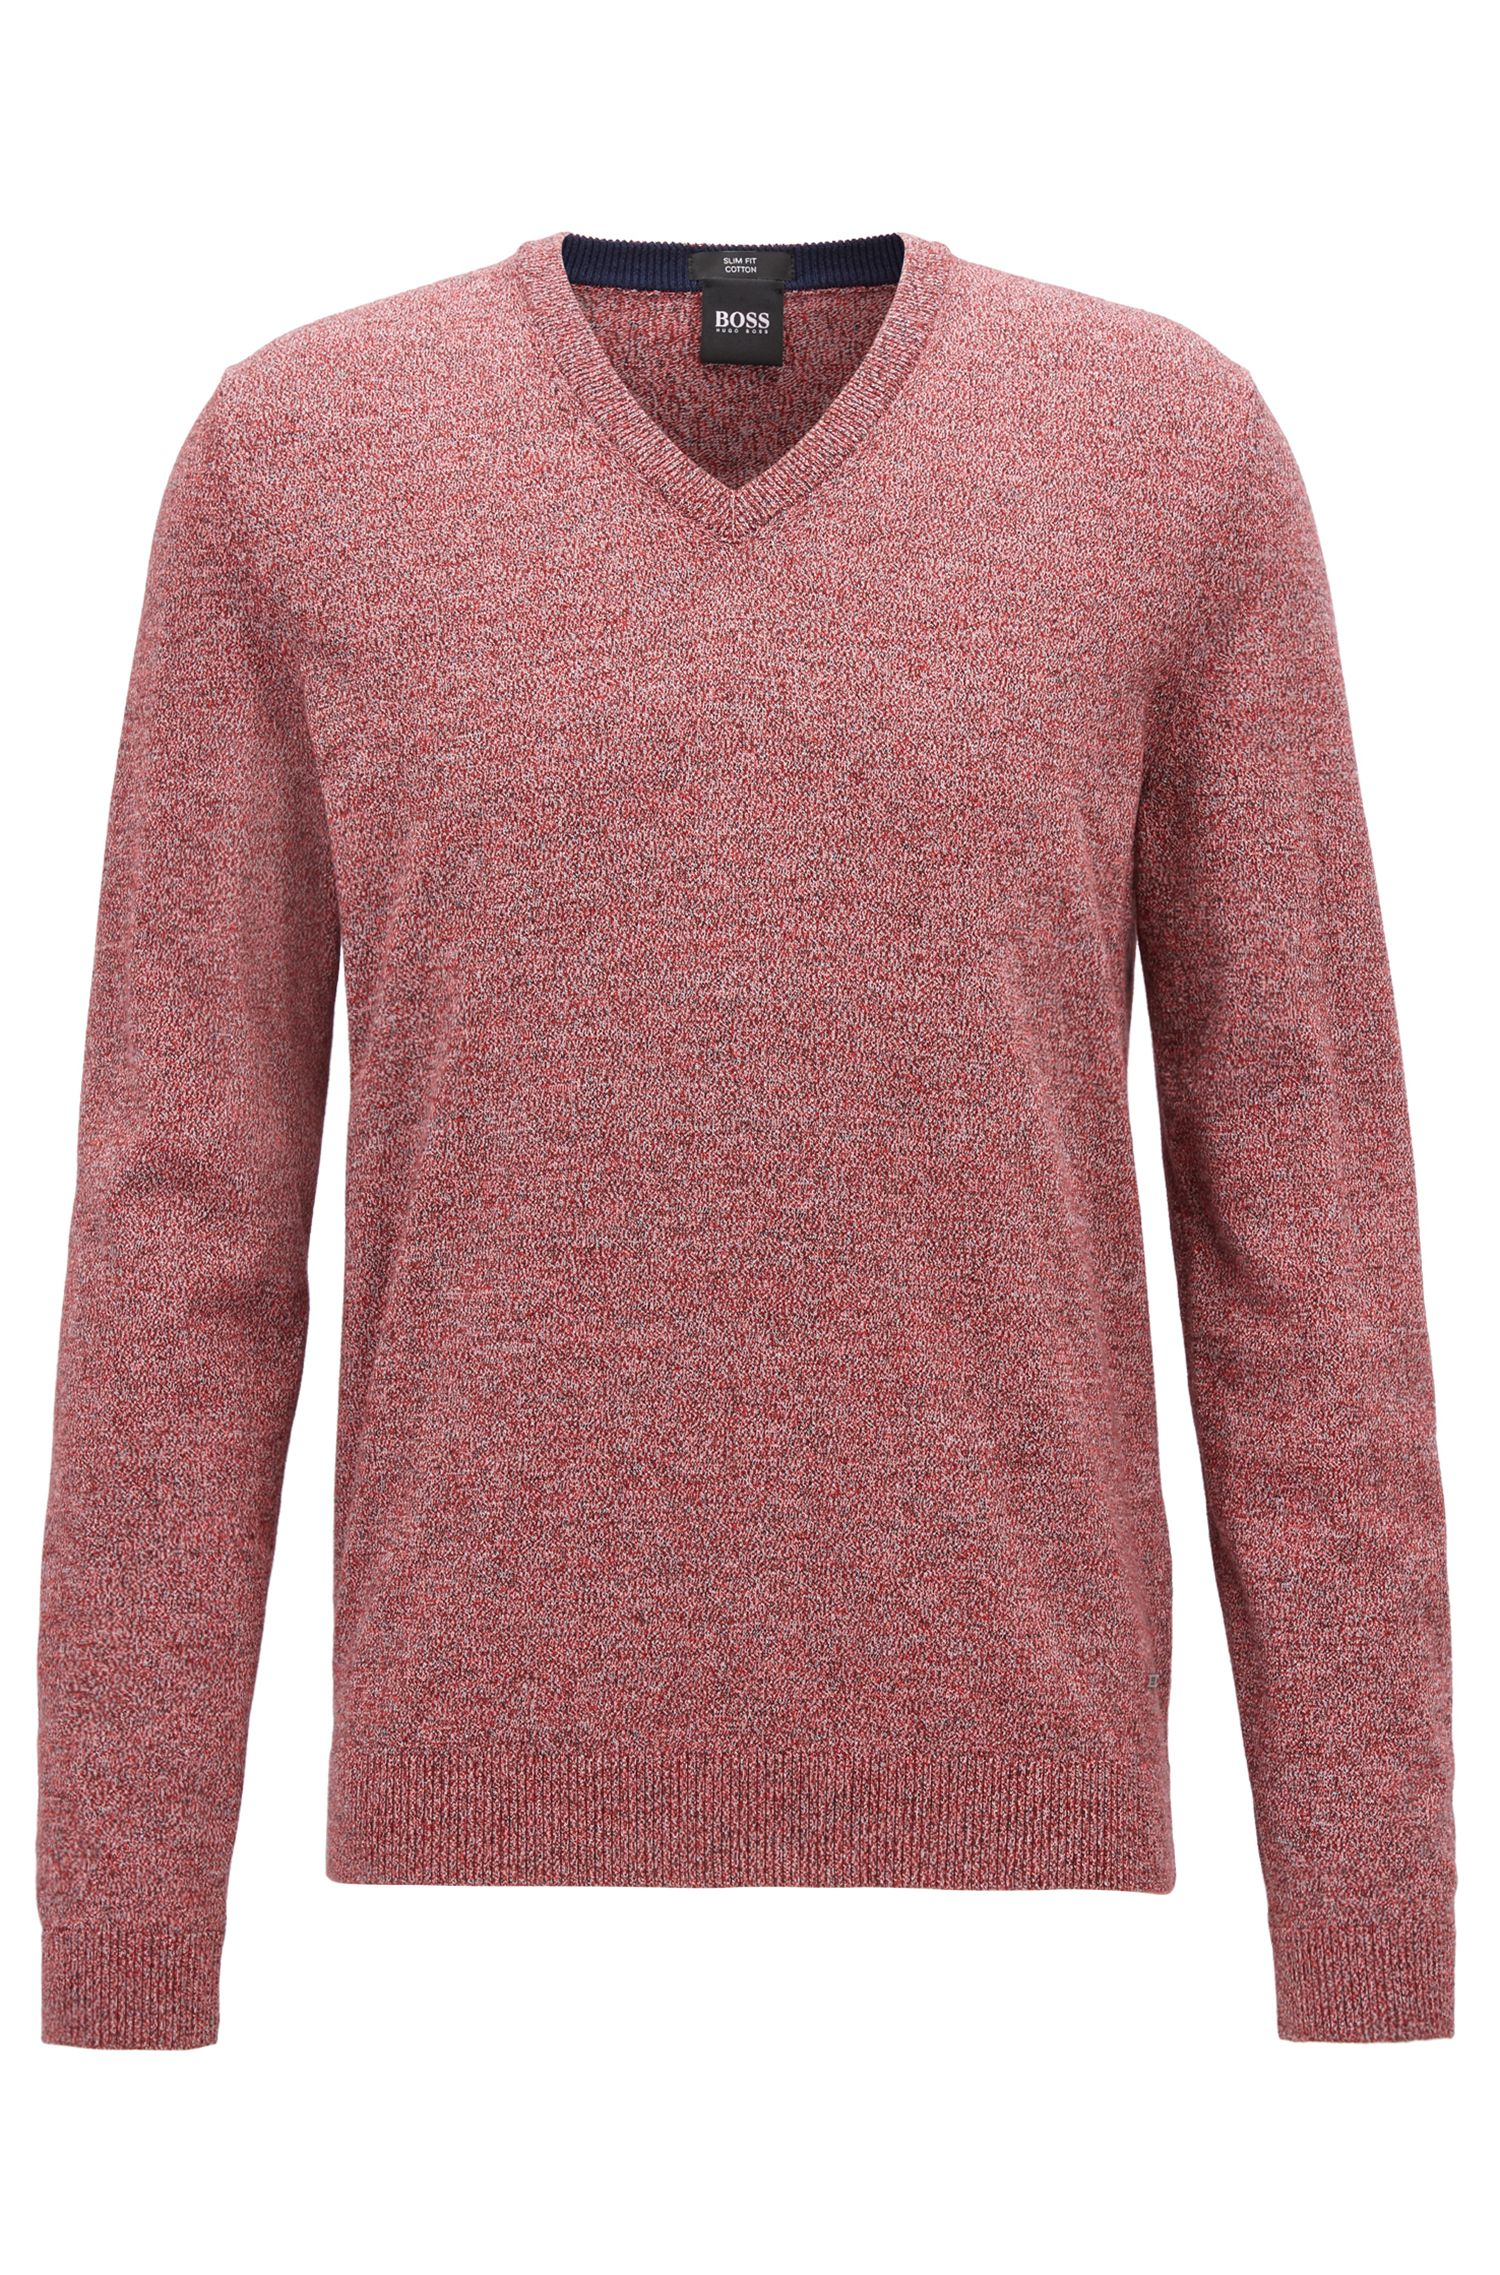 Cotton V-Neck Sweater | Fabbert D, Dark Orange